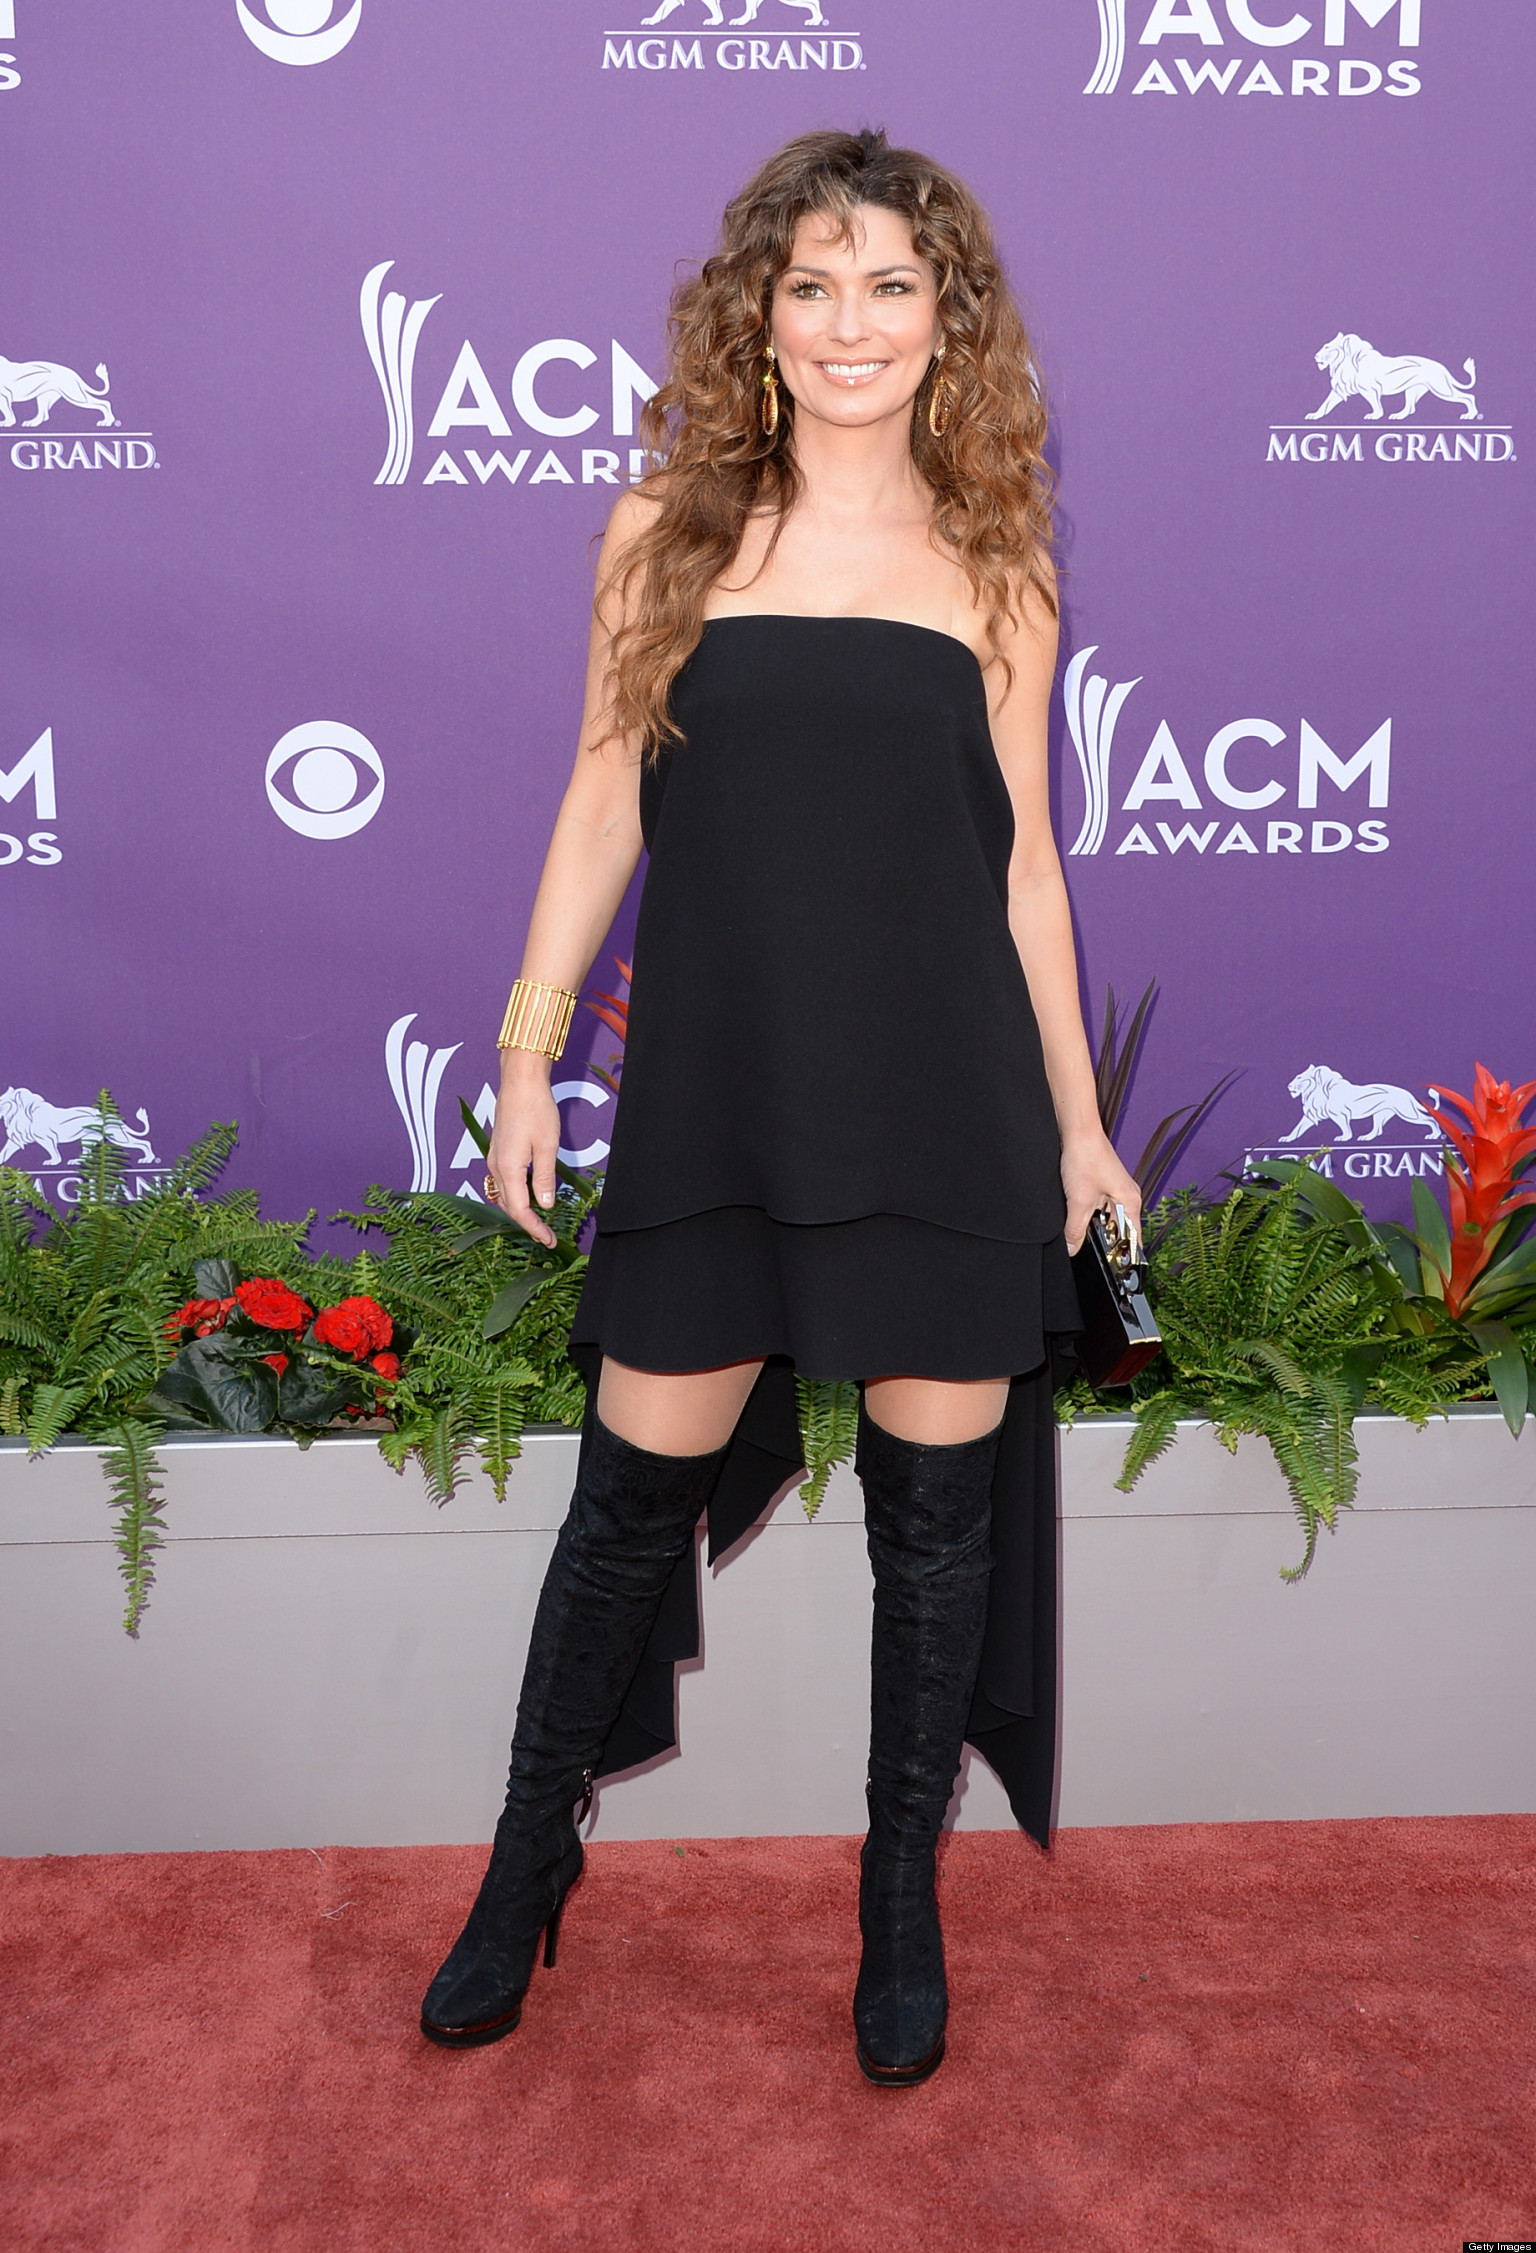 Shania Twain's ACM Awards Dress Was Short, Strapless AND Backless (PHOTOS) | HuffPost